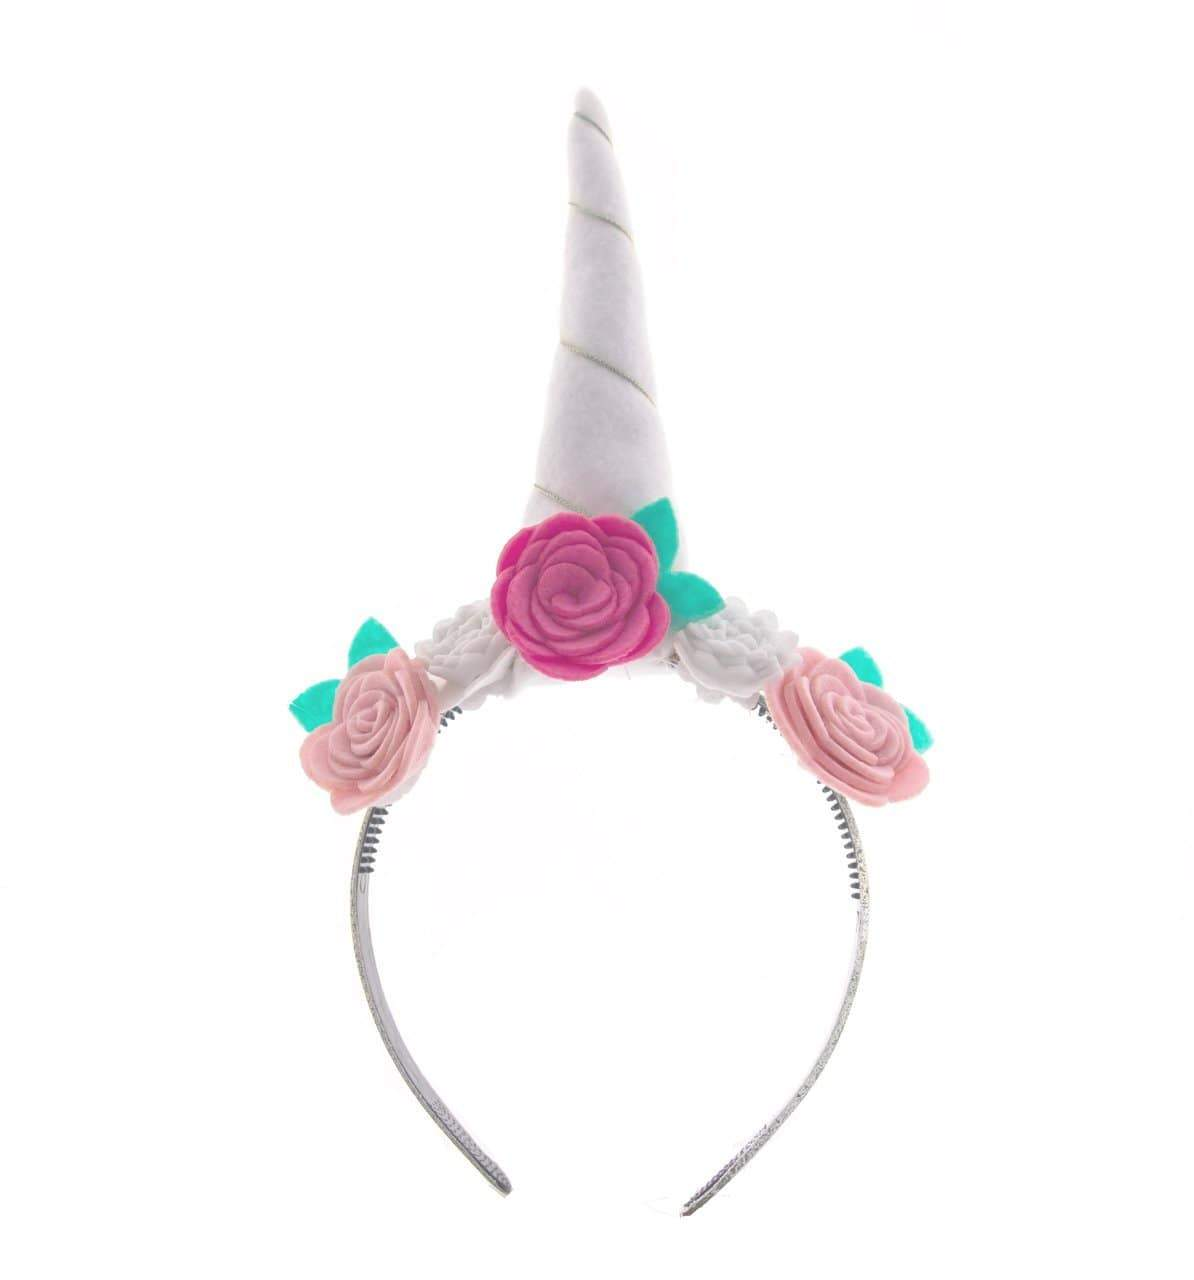 Huckleberry Unicorn Headband